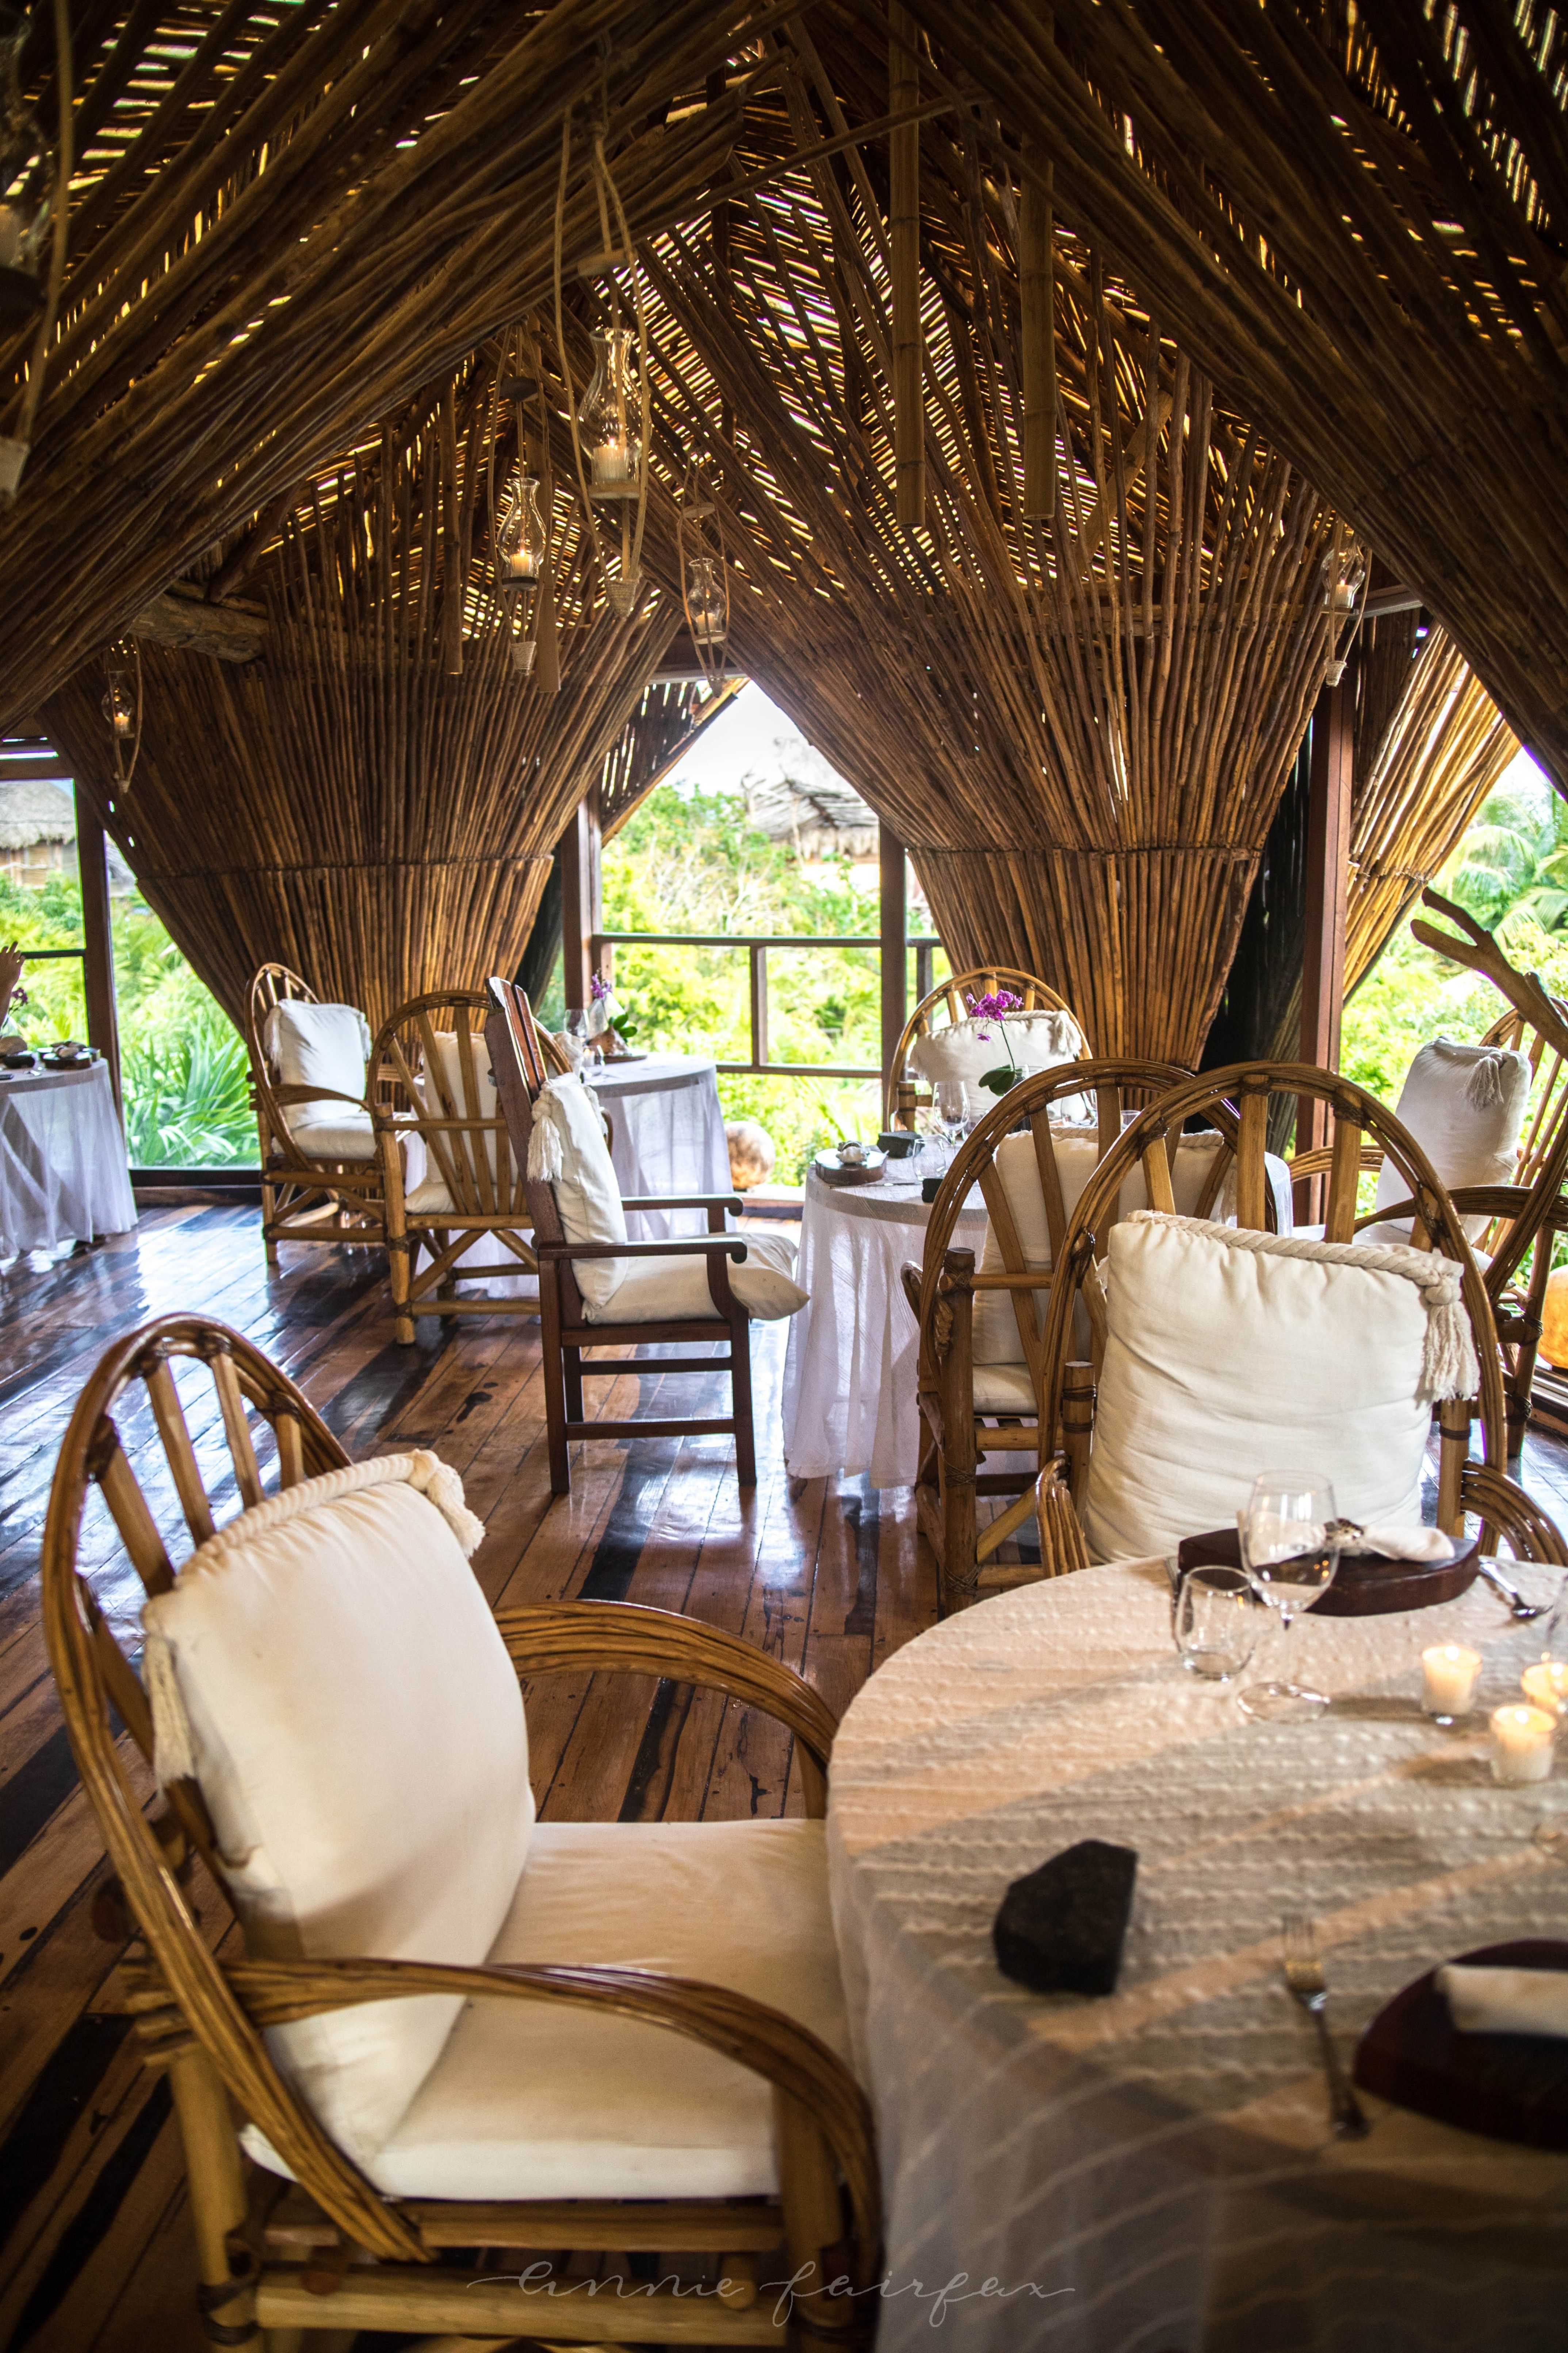 Luxury Restaurants Of The World Tree House Above The Jungle Kin Toh Restaurant Tulum Annie Fairfax Luxury Restaurant Best Places To Eat Mexico Travel